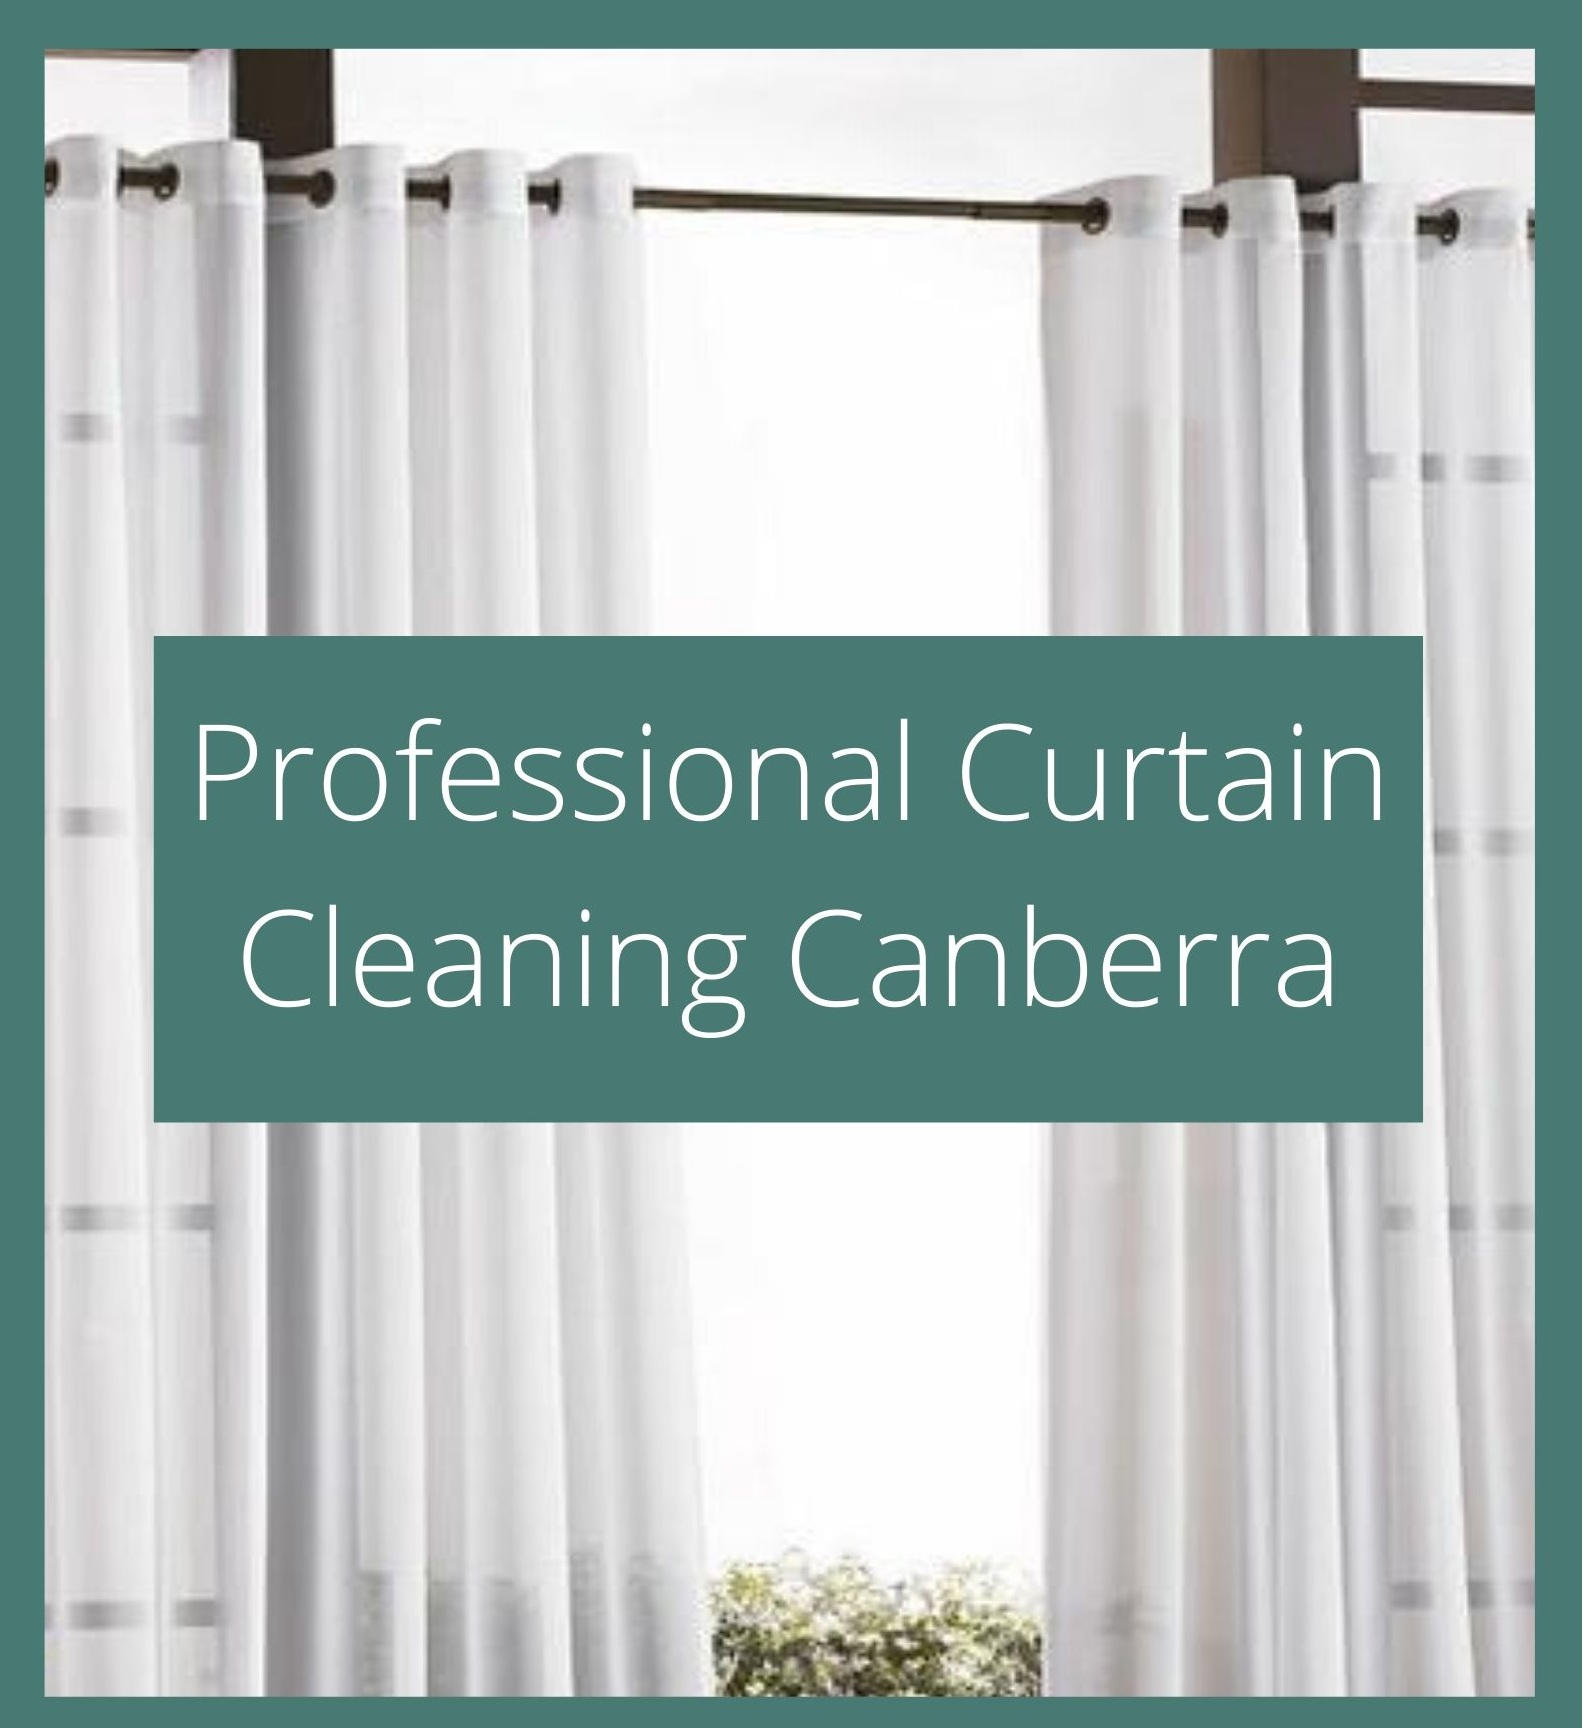 Professional Curtain Cleaning Canberra